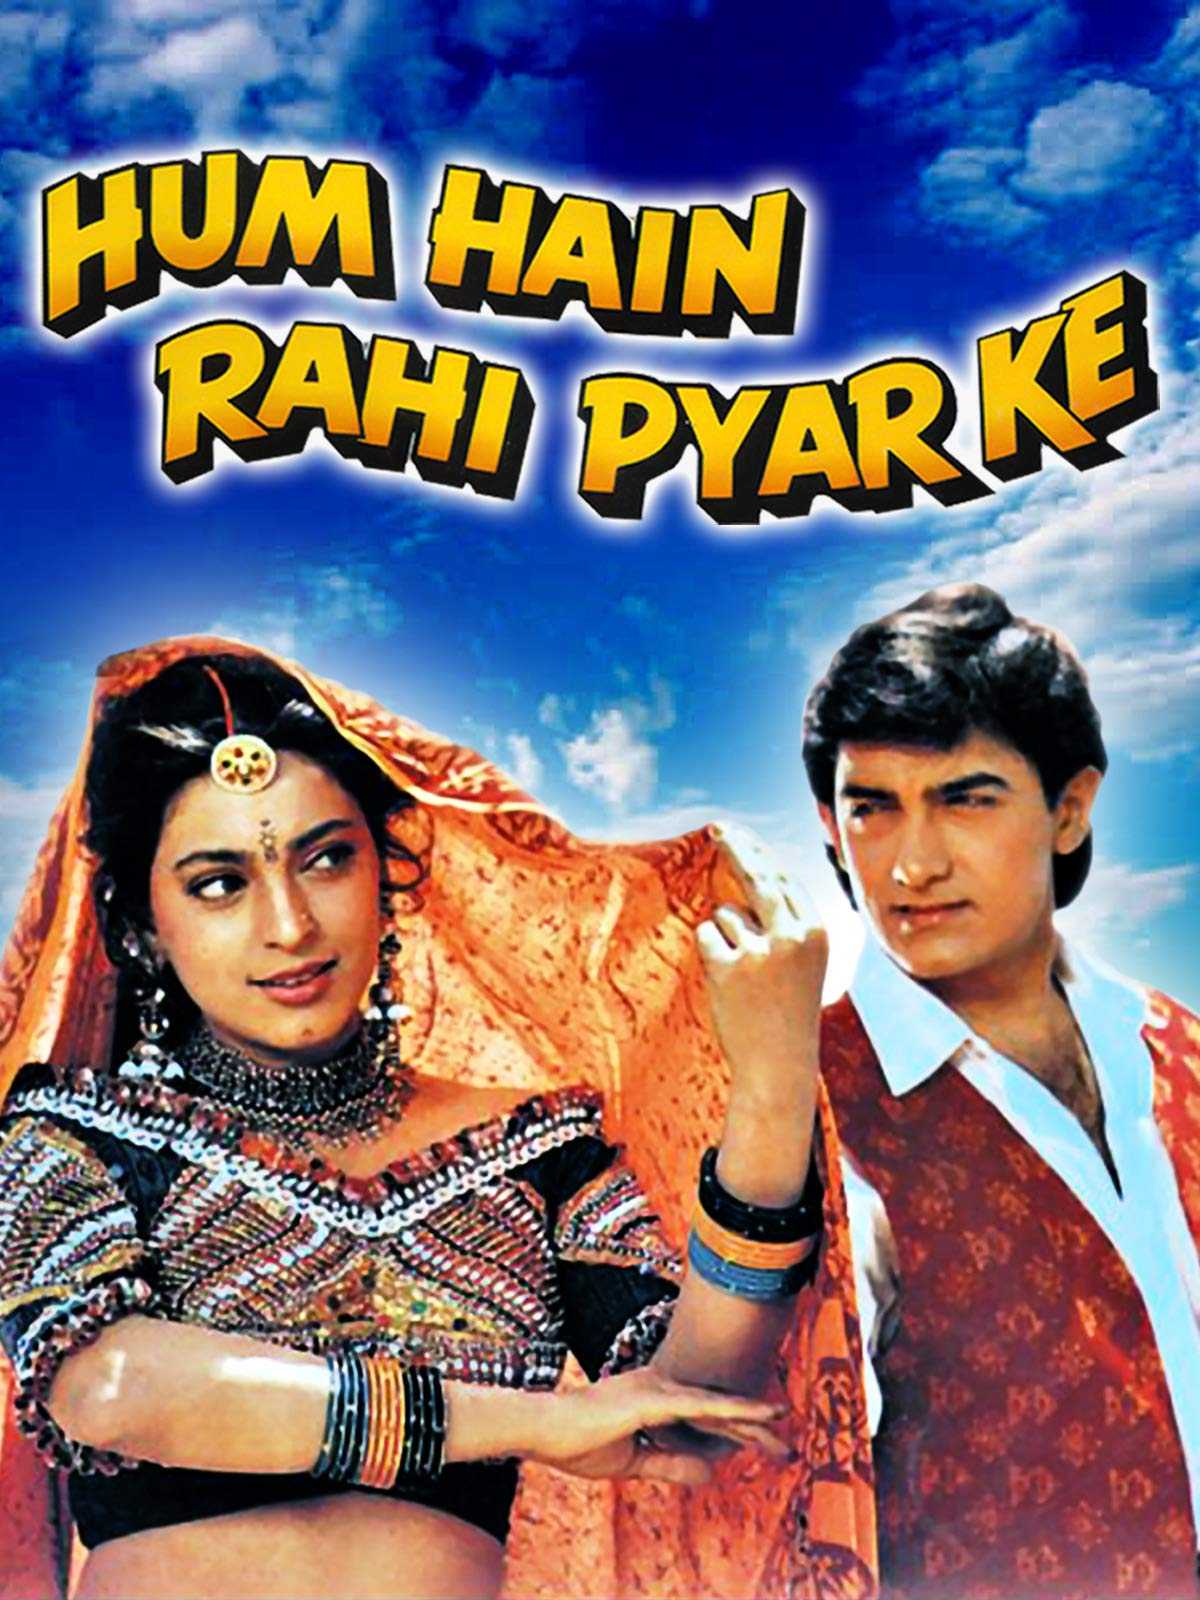 Hum Hain Rahi Pyar Ke 1993 Hindi 720p AMZN HDRip ESubs 1GB Download